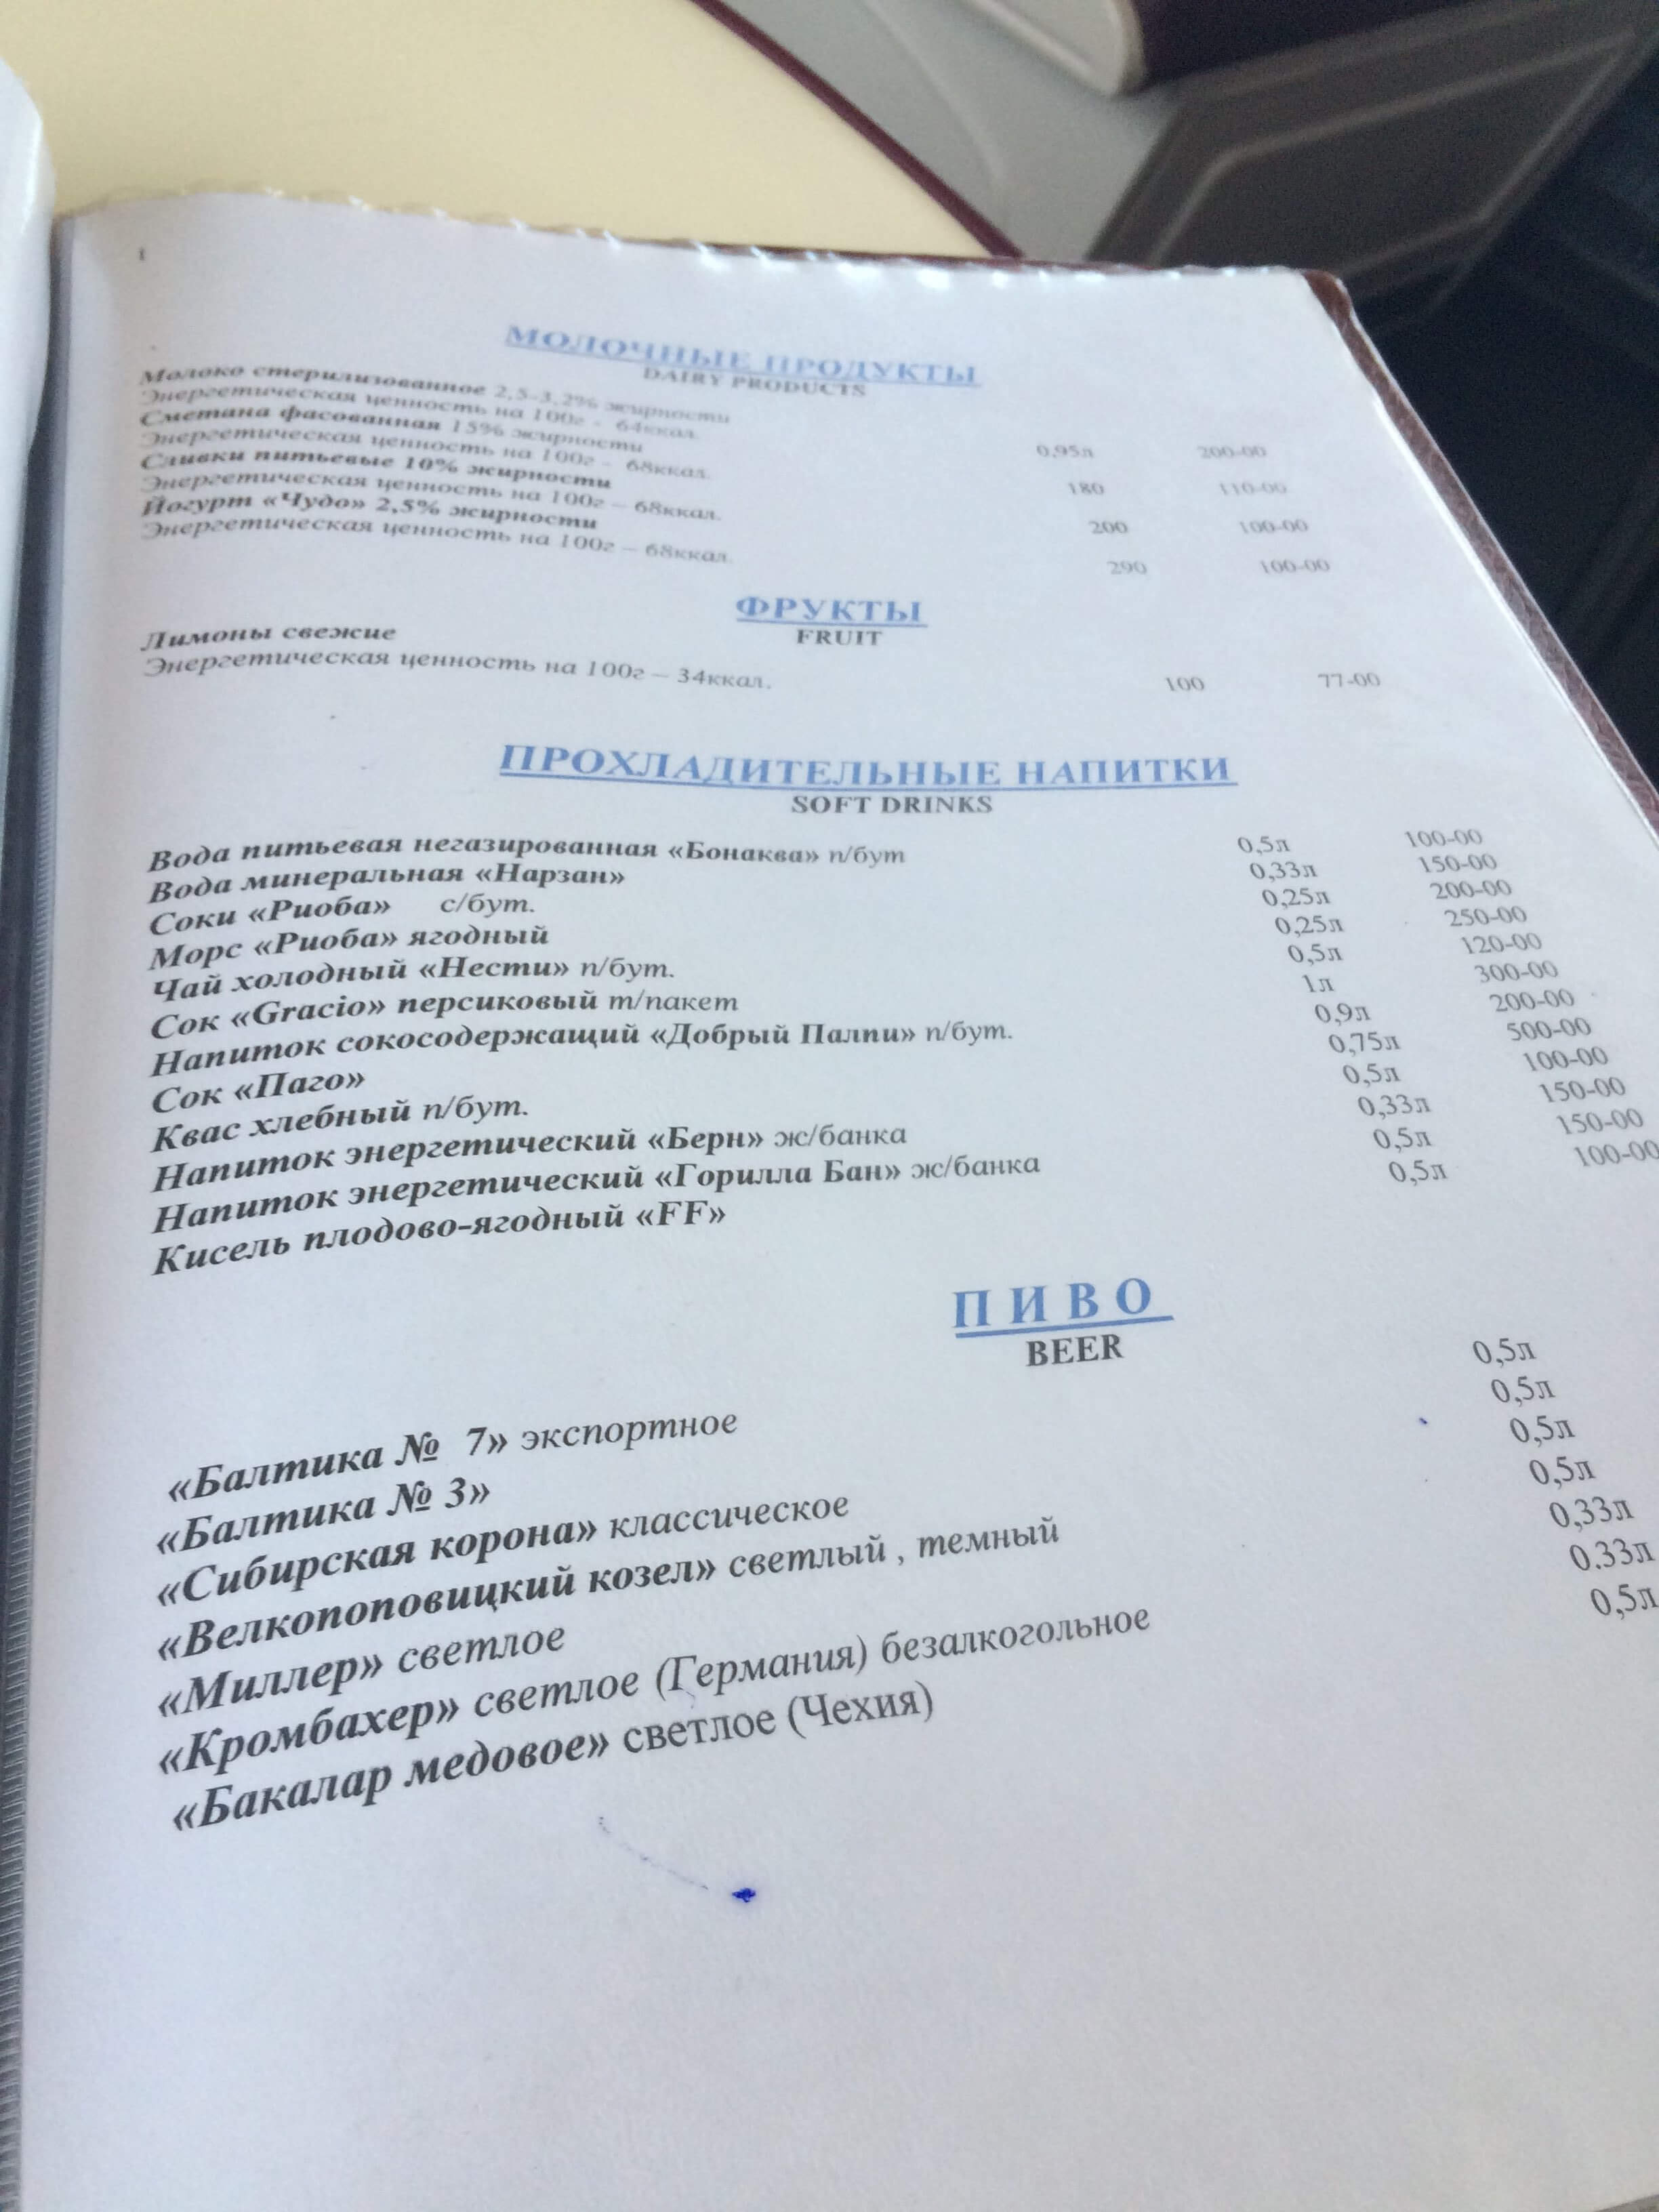 Example of the menu in the train restaurant